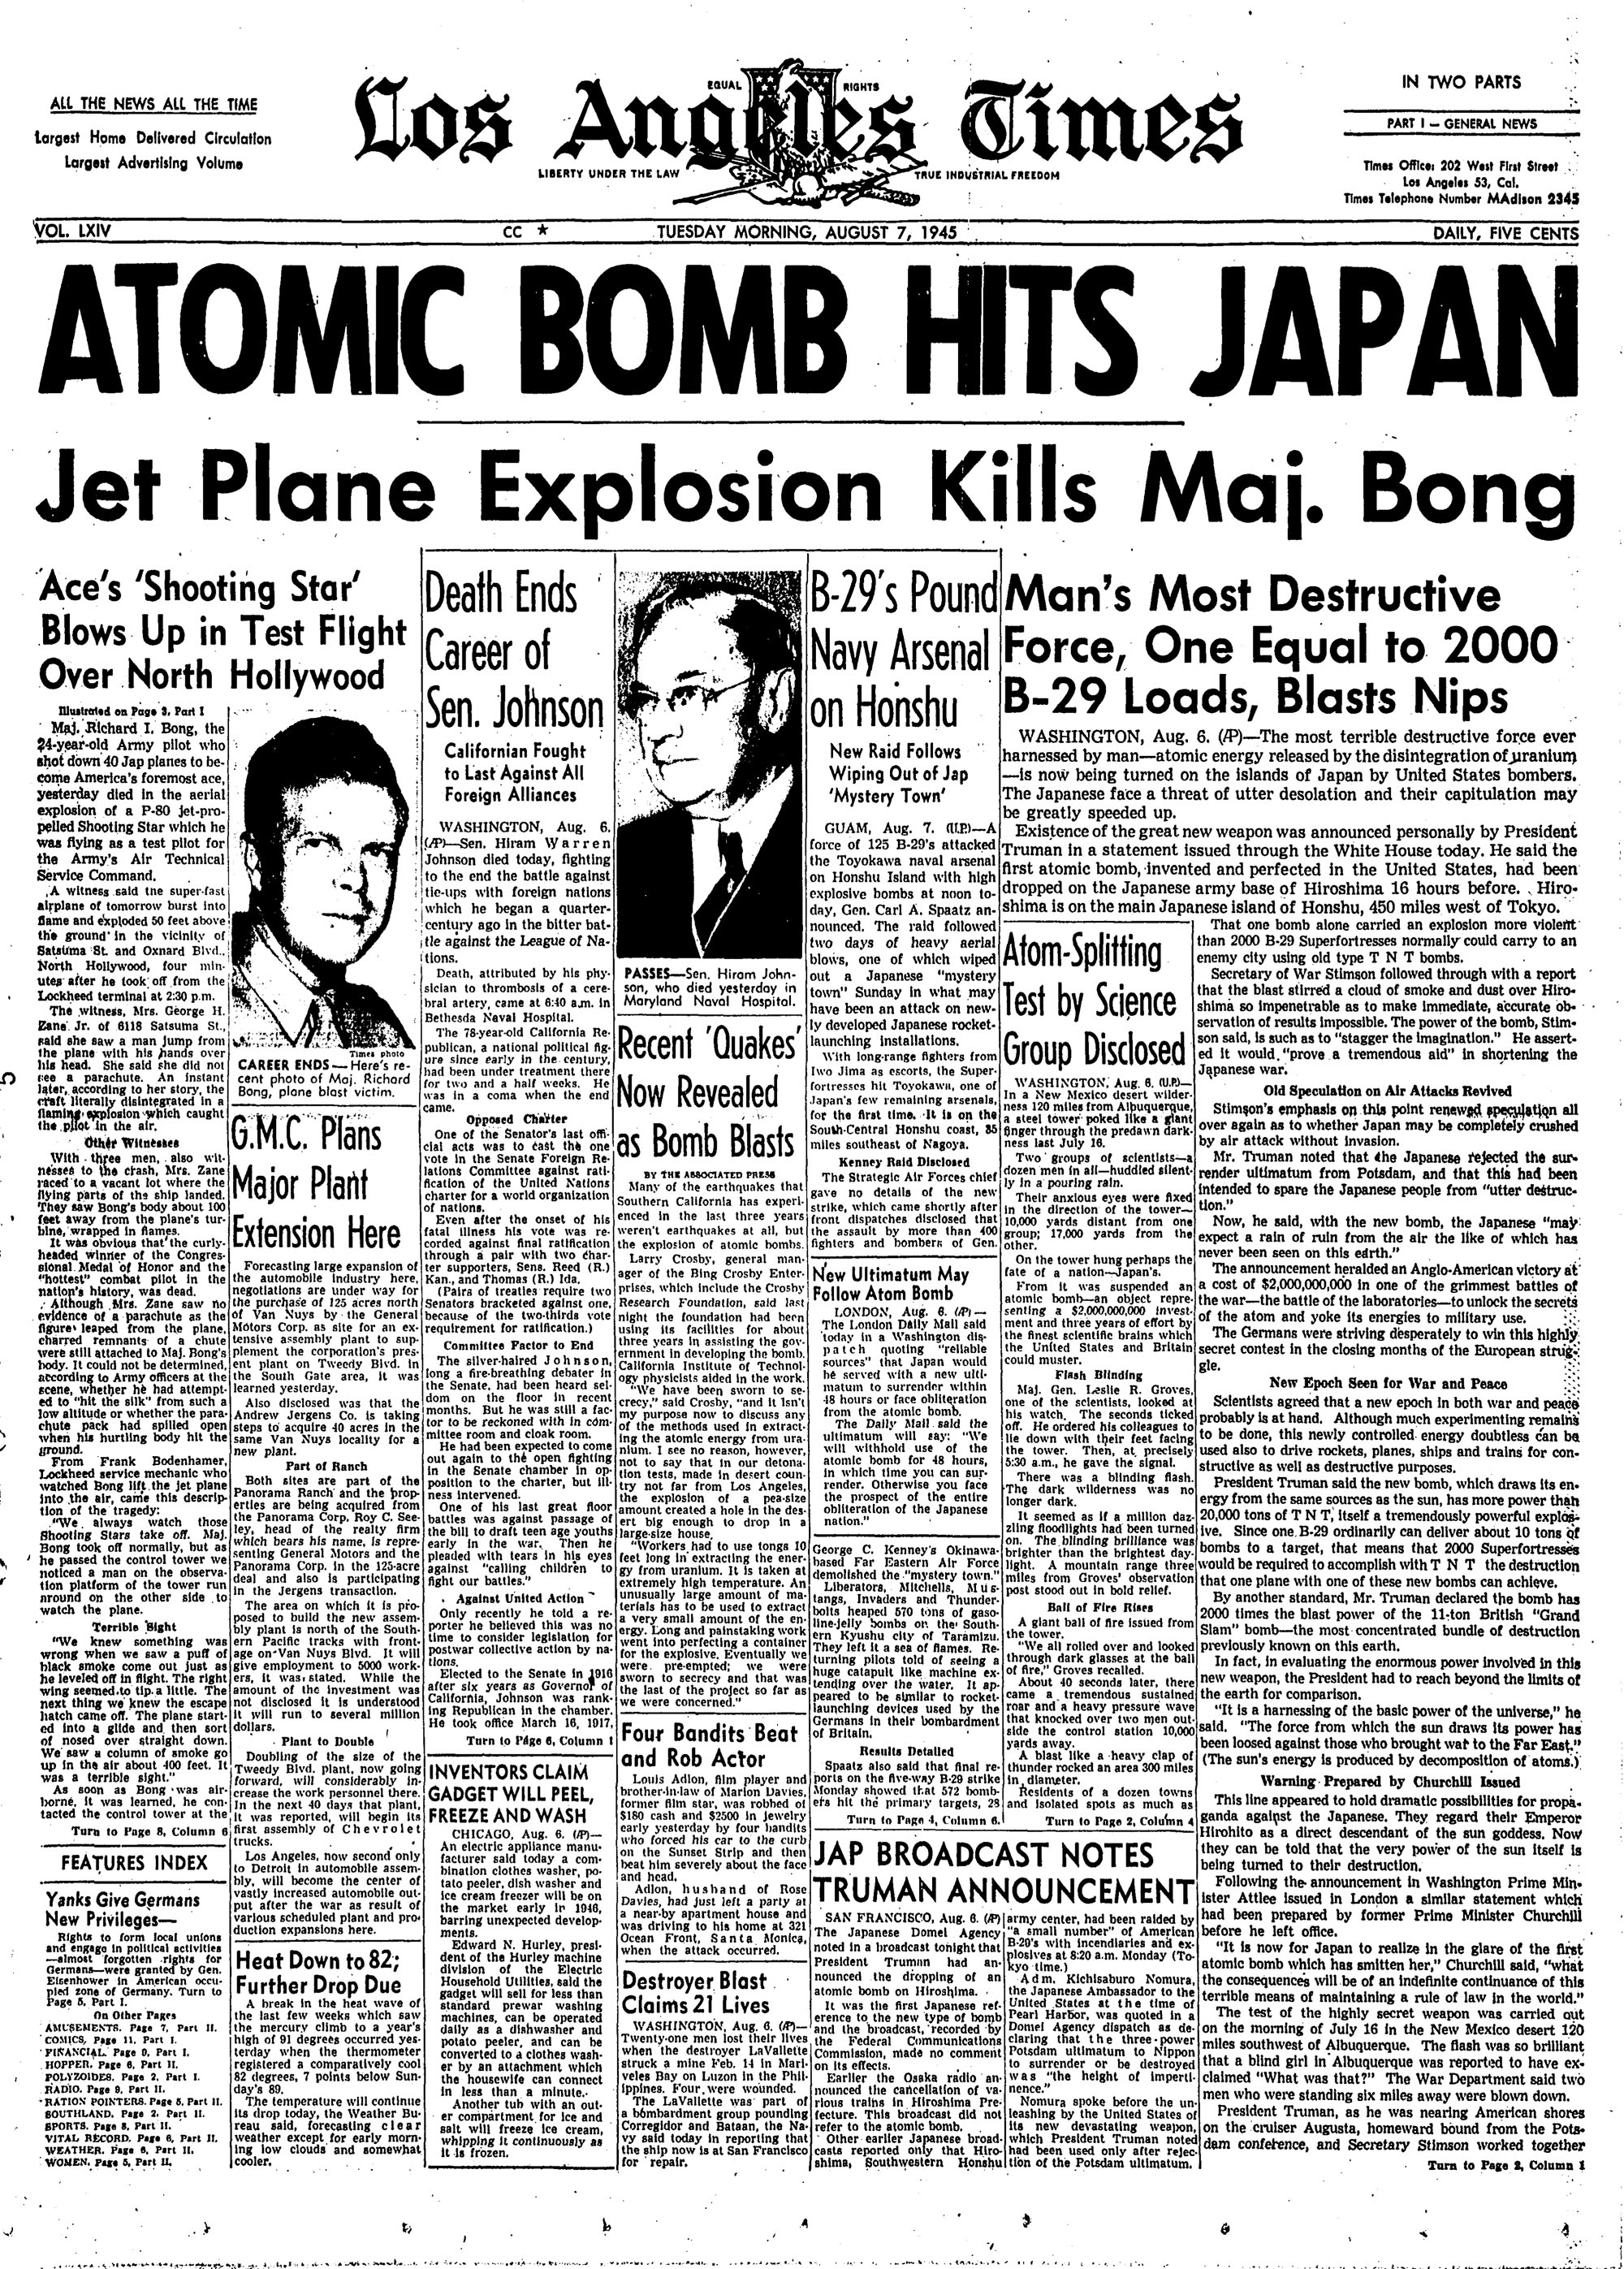 http://blog.nuclearsecrecy.com/wp-content/uploads/2013/08/1945-08-07-Los-Angeles-Times-front-page.jpg